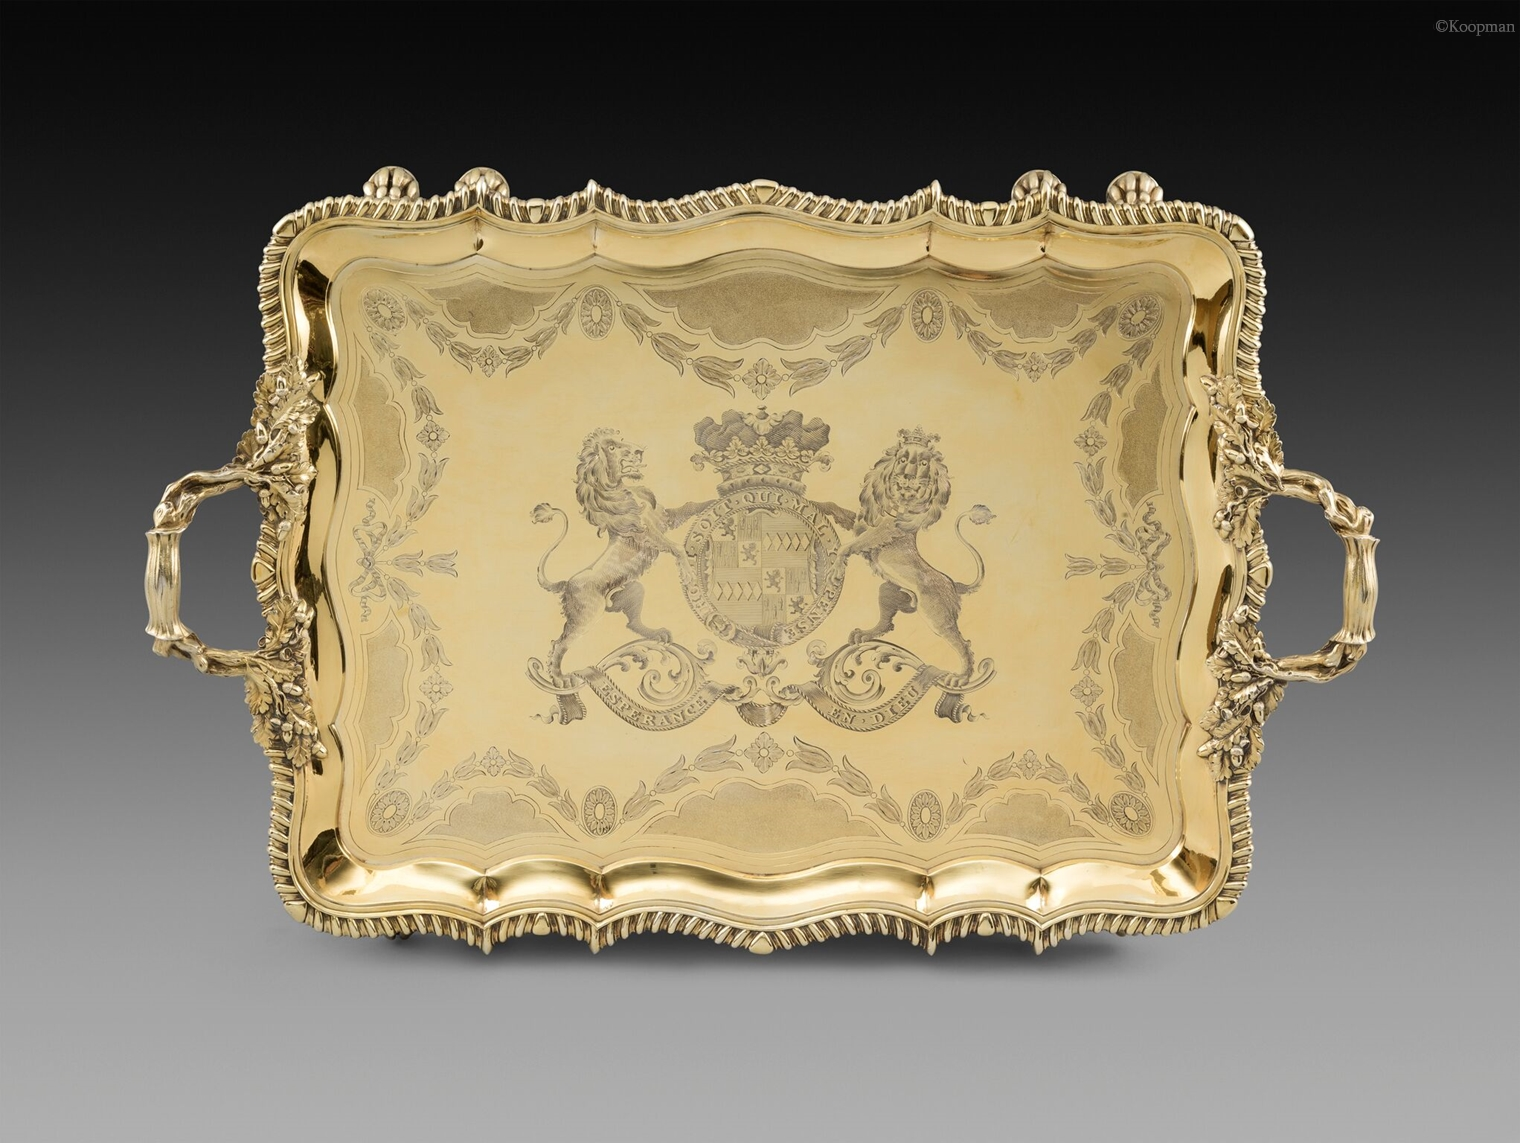 A Historically Important Silver-Gilt Tray